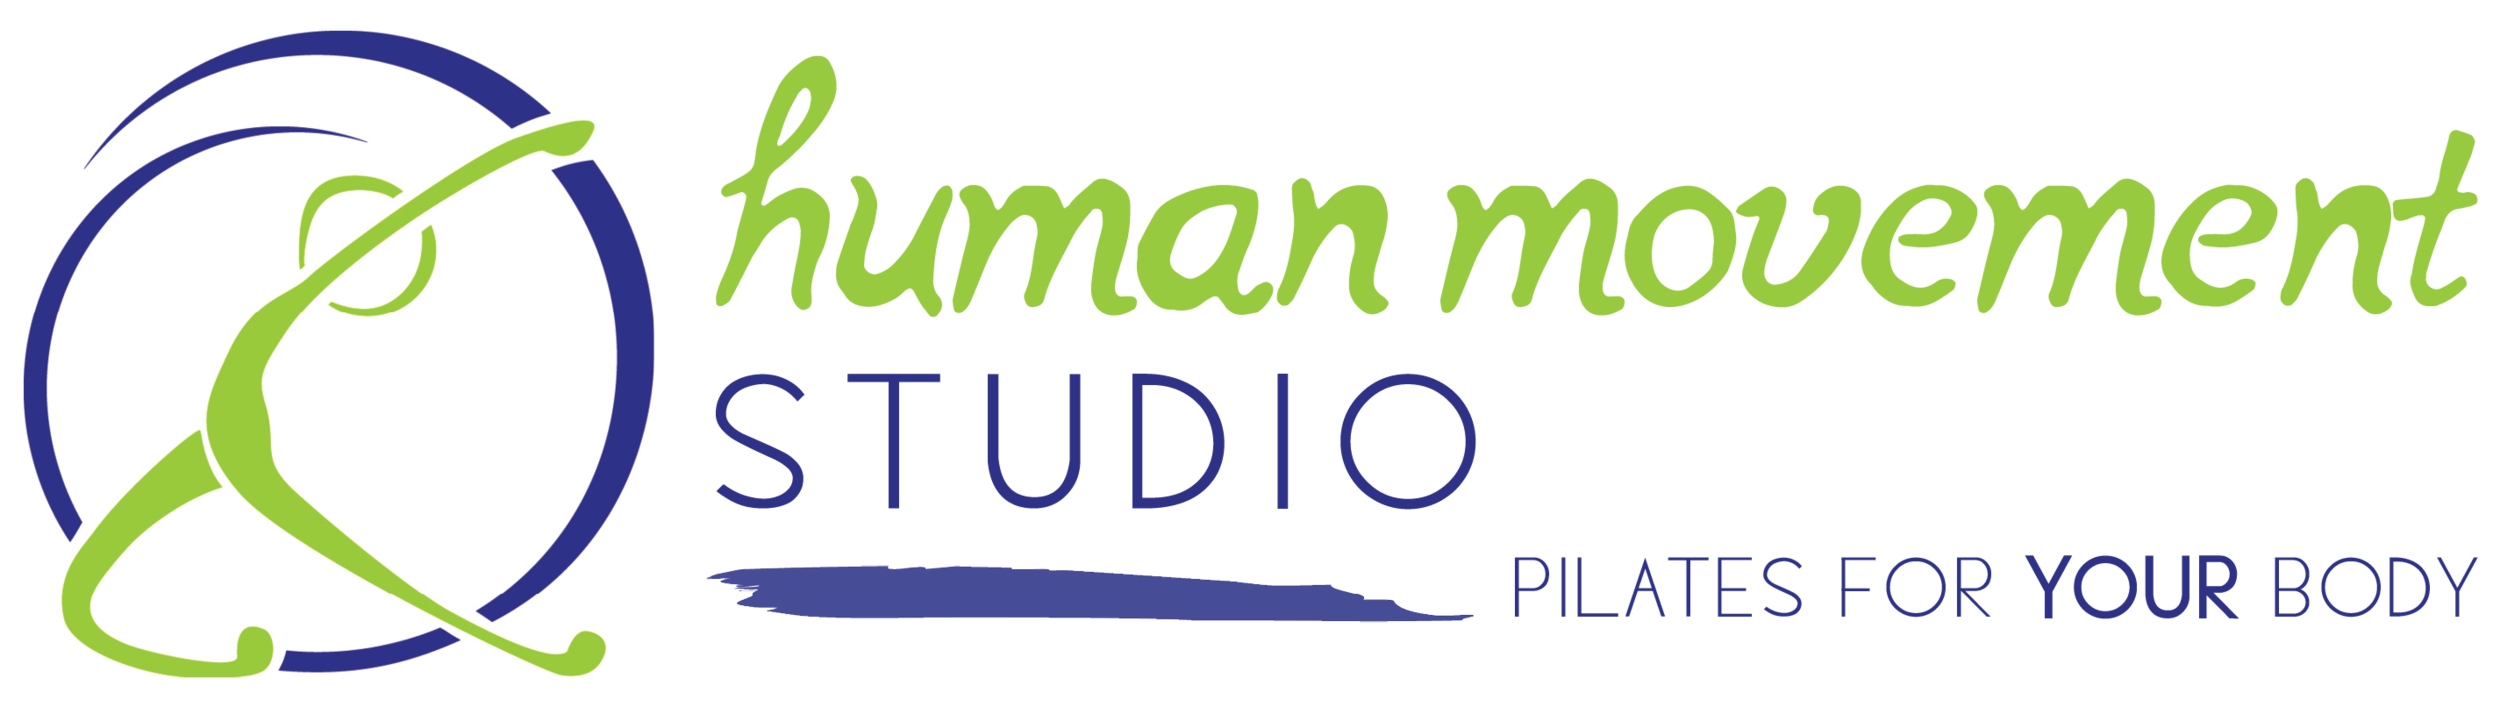 Logo - Human Movement Studio 2017 FINAL not perfect and hilo deco.png